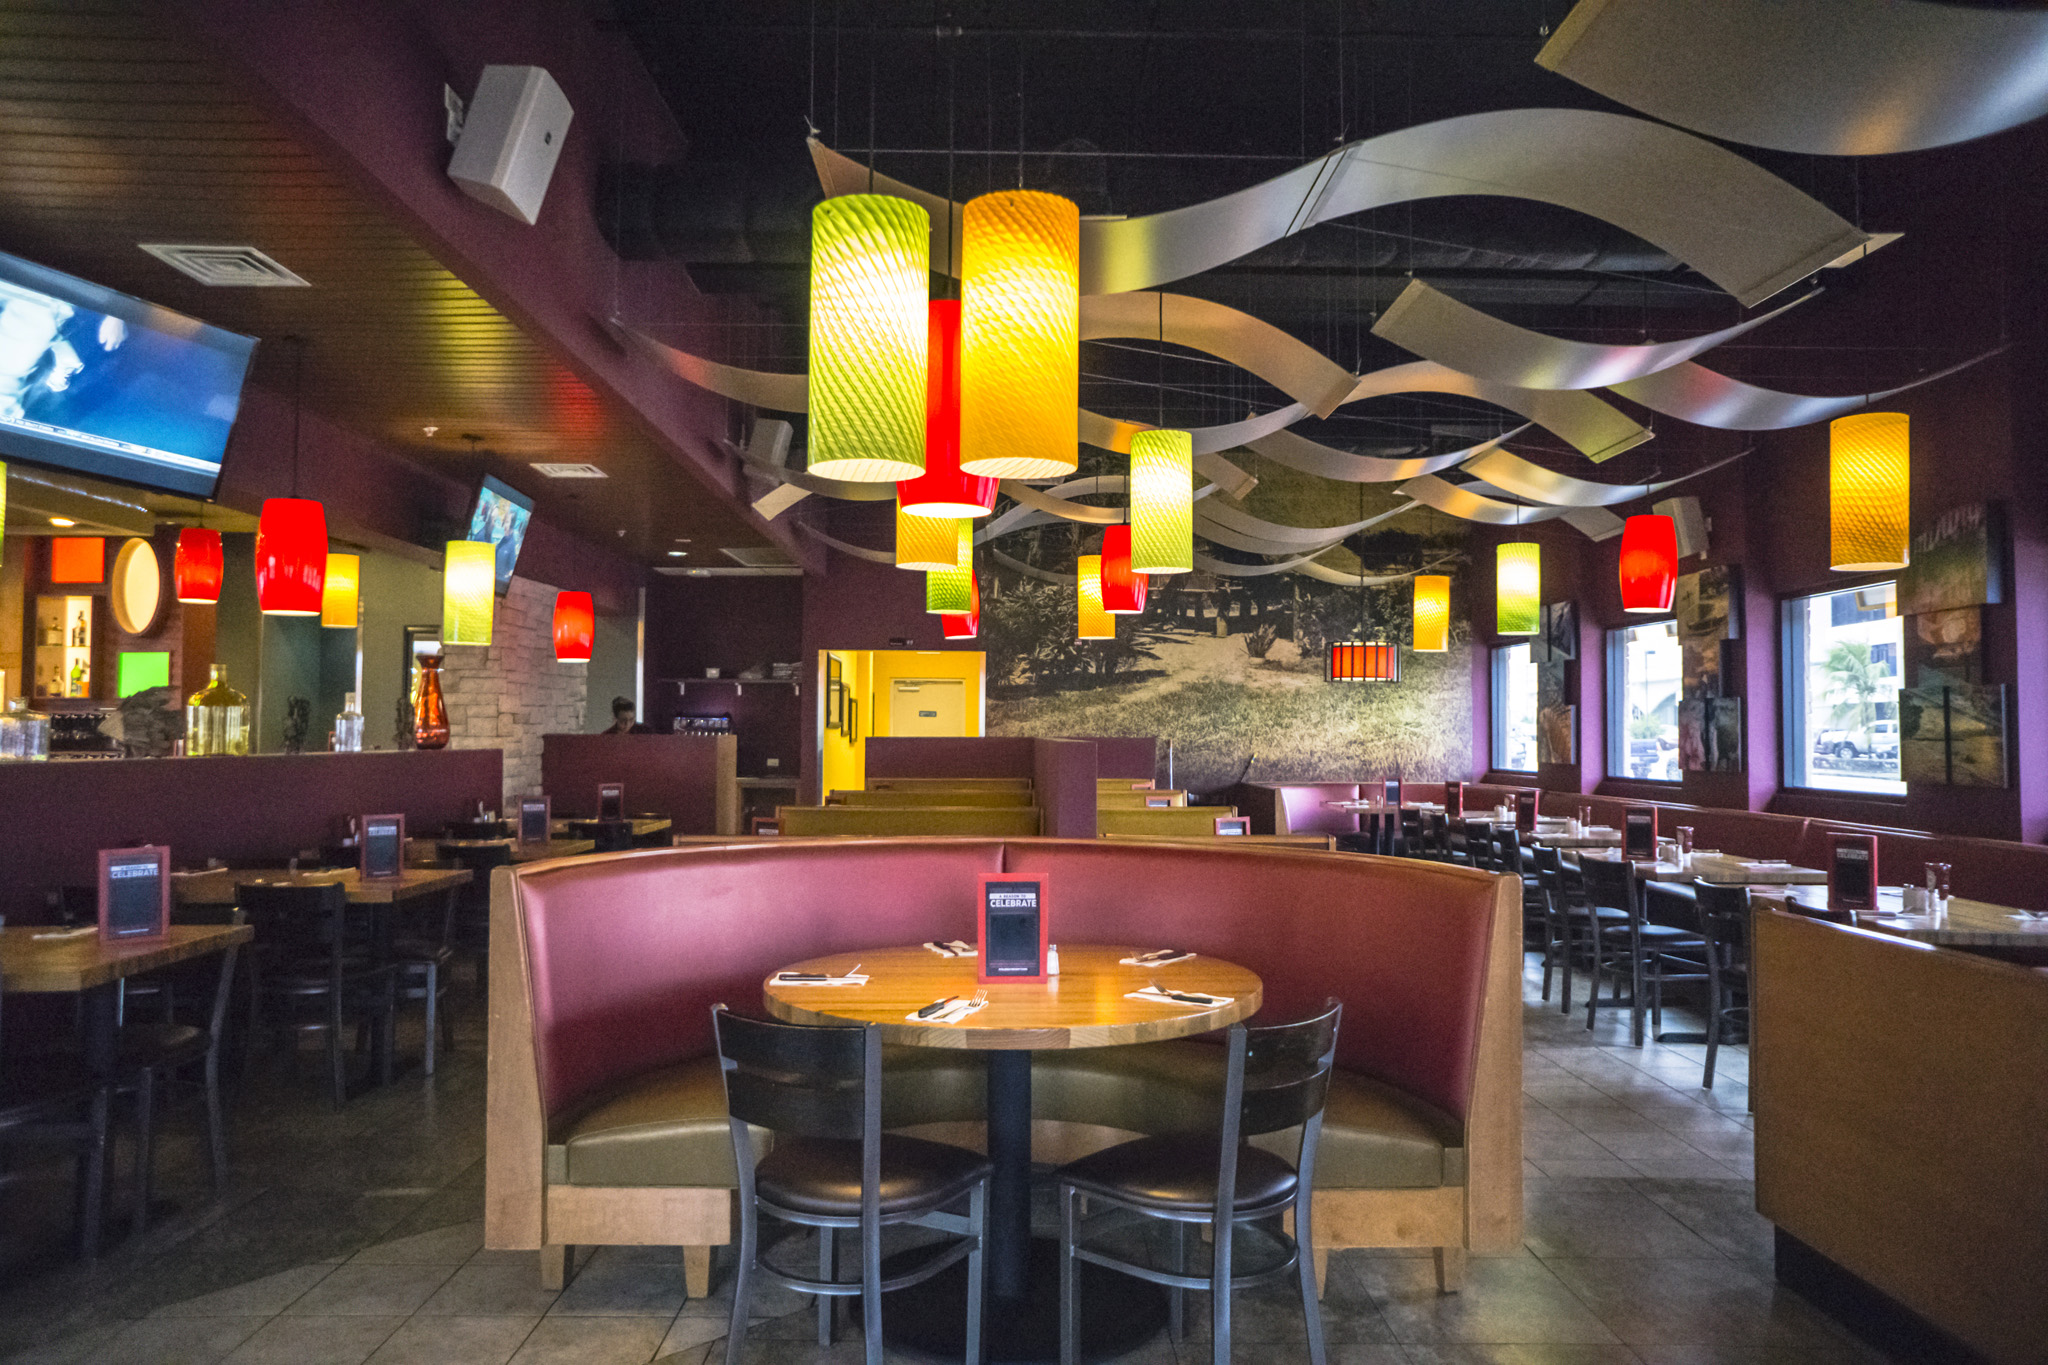 Applebees Interior 3.jpg